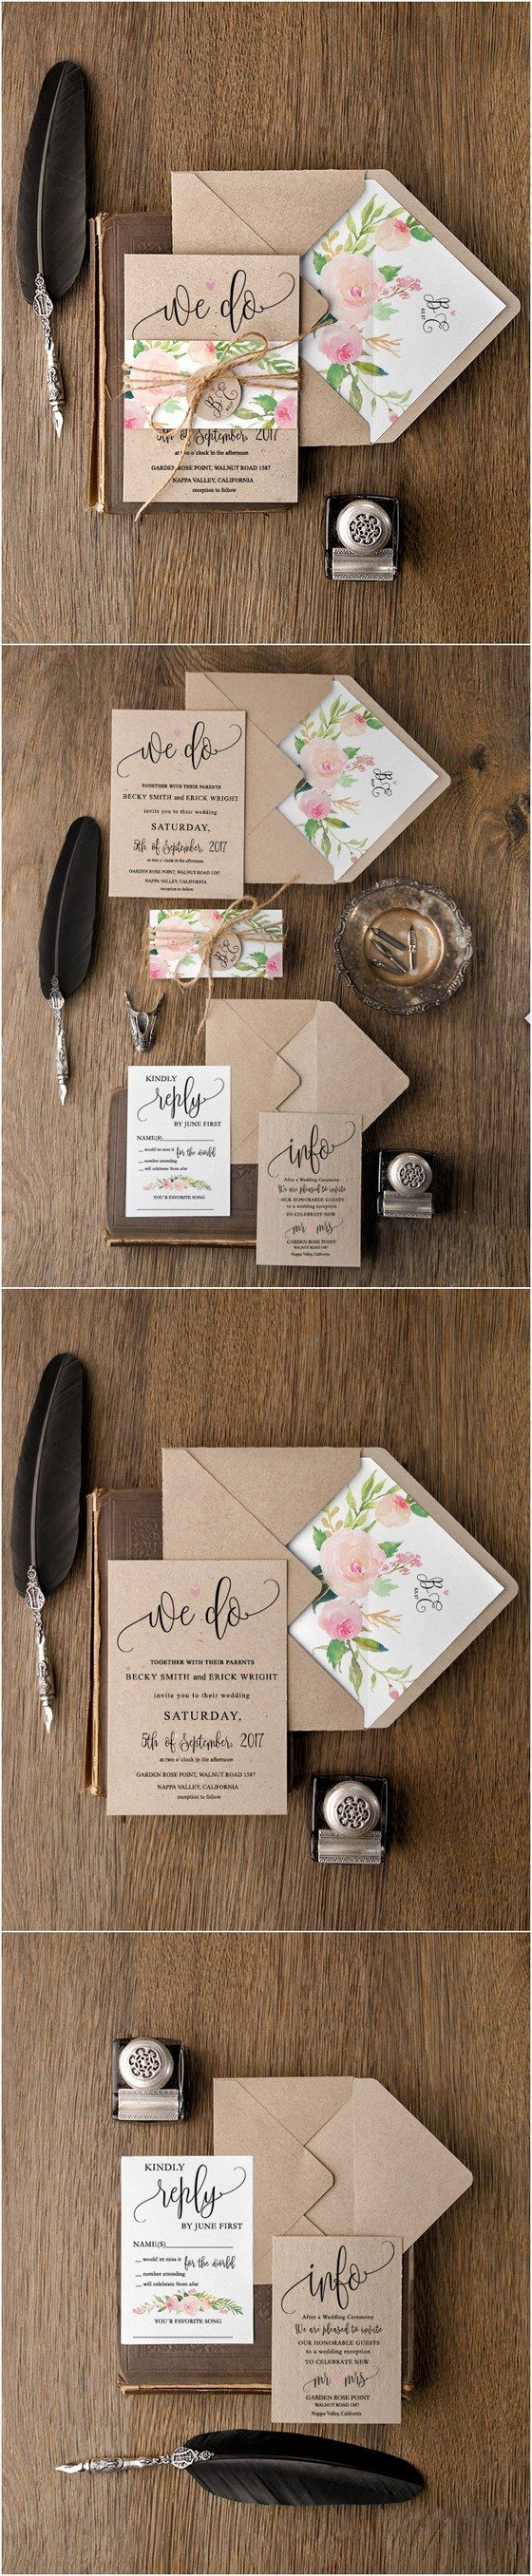 wedding shower invitations omaha%0A Rustic country kraft paper wedding invitations  rusticwedding   countrywedding  weddingcards  weddingideas